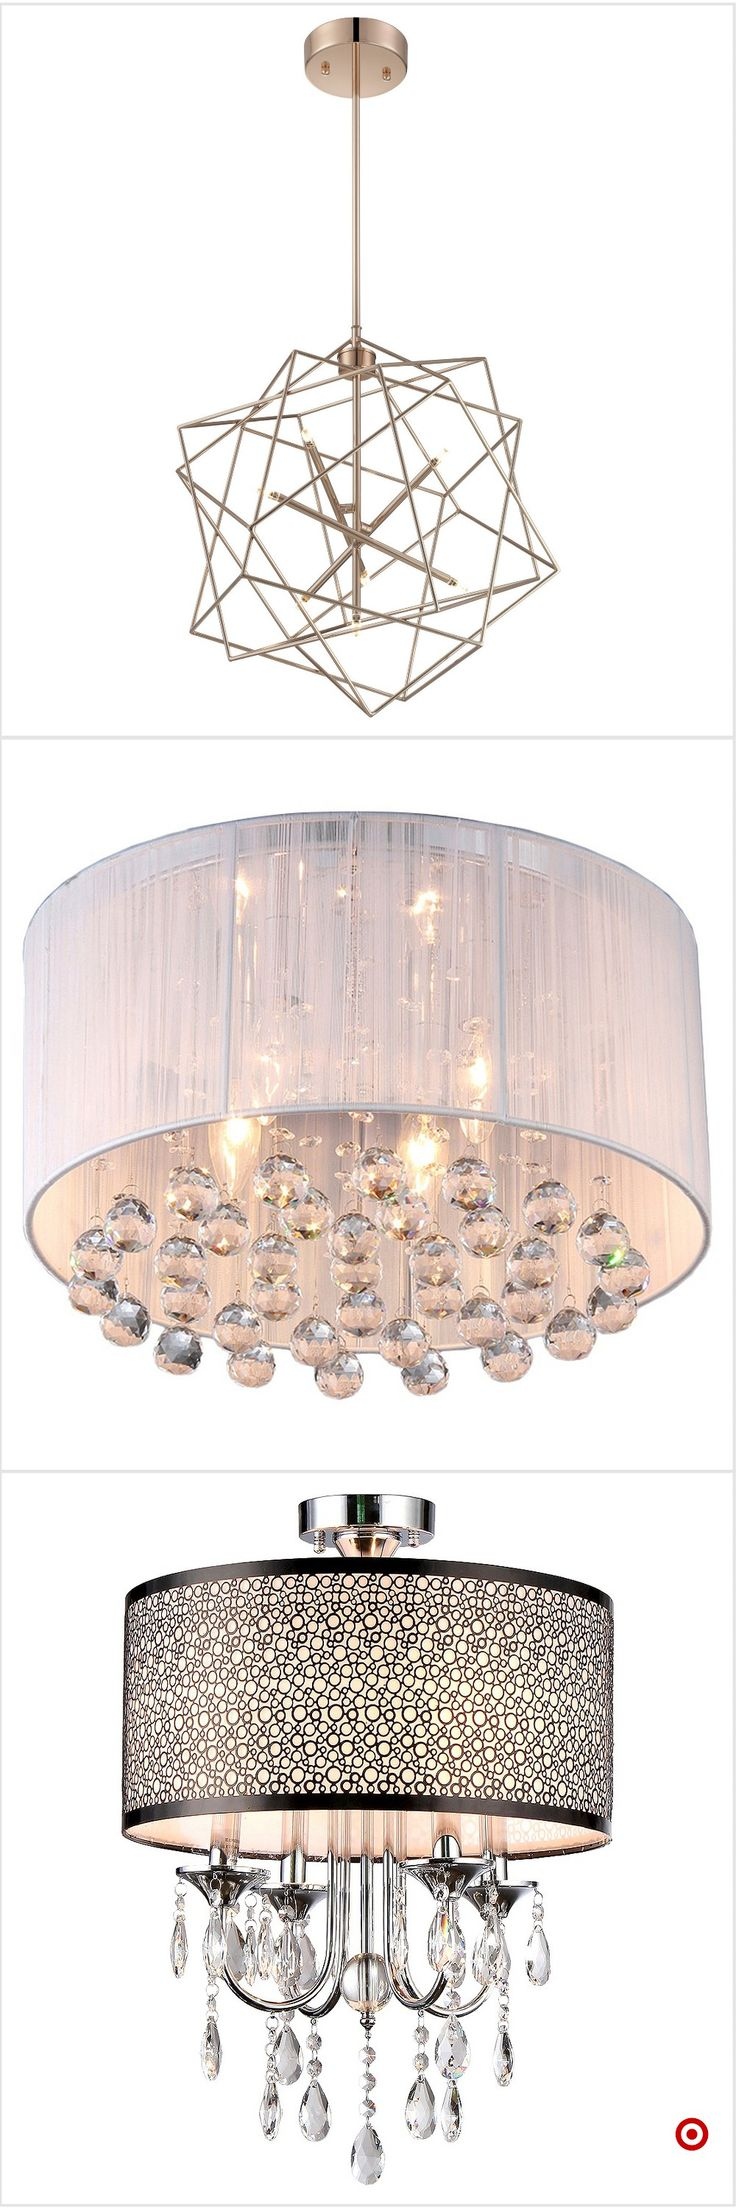 Shop Target for ceiling lights you will love at great low prices. Free shipping on orders of $35+ or free same-day pick-up in store.